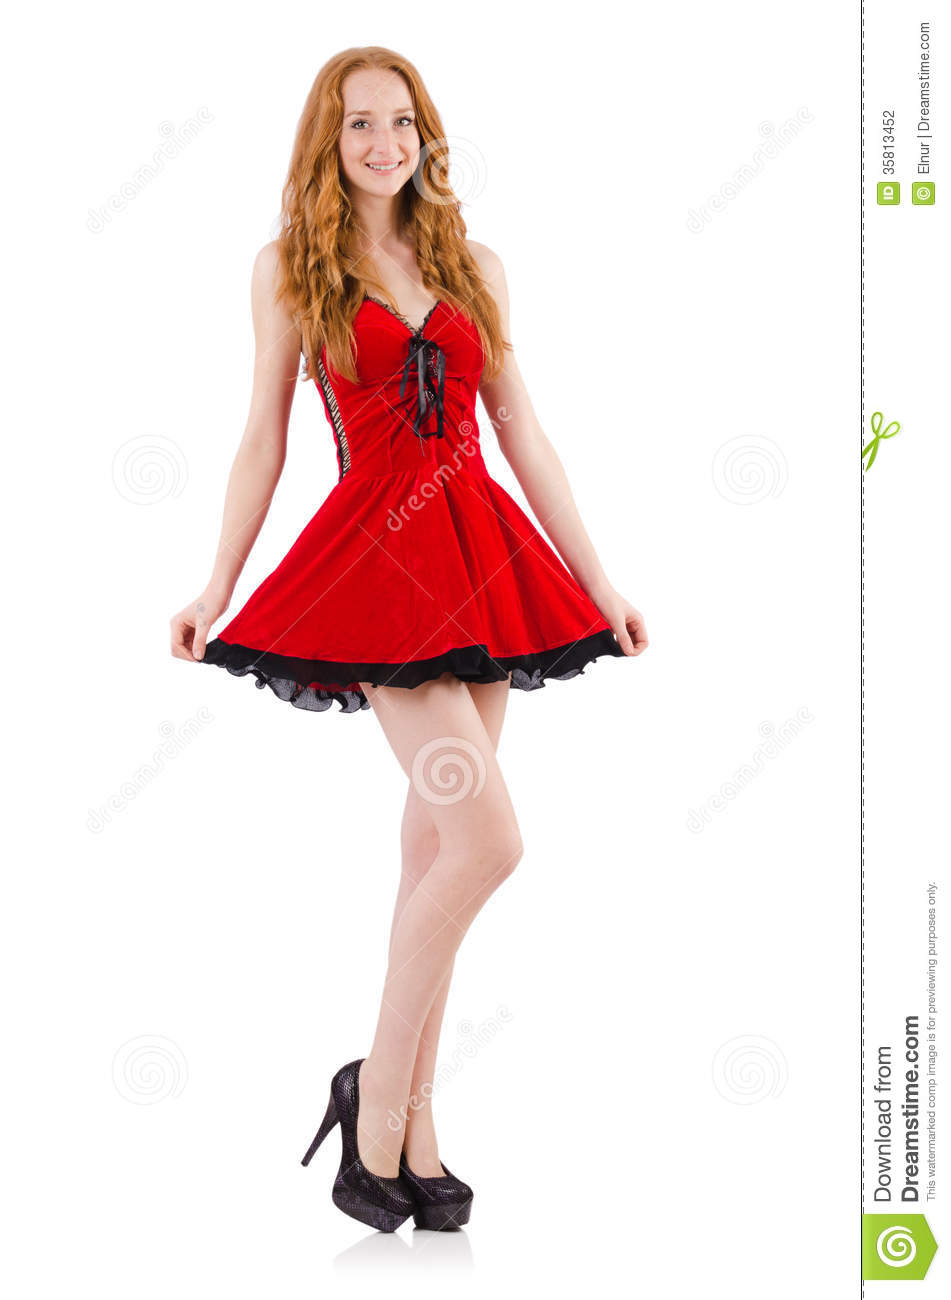 Redhead In Red Dress Stock Photography - Image: 35813452